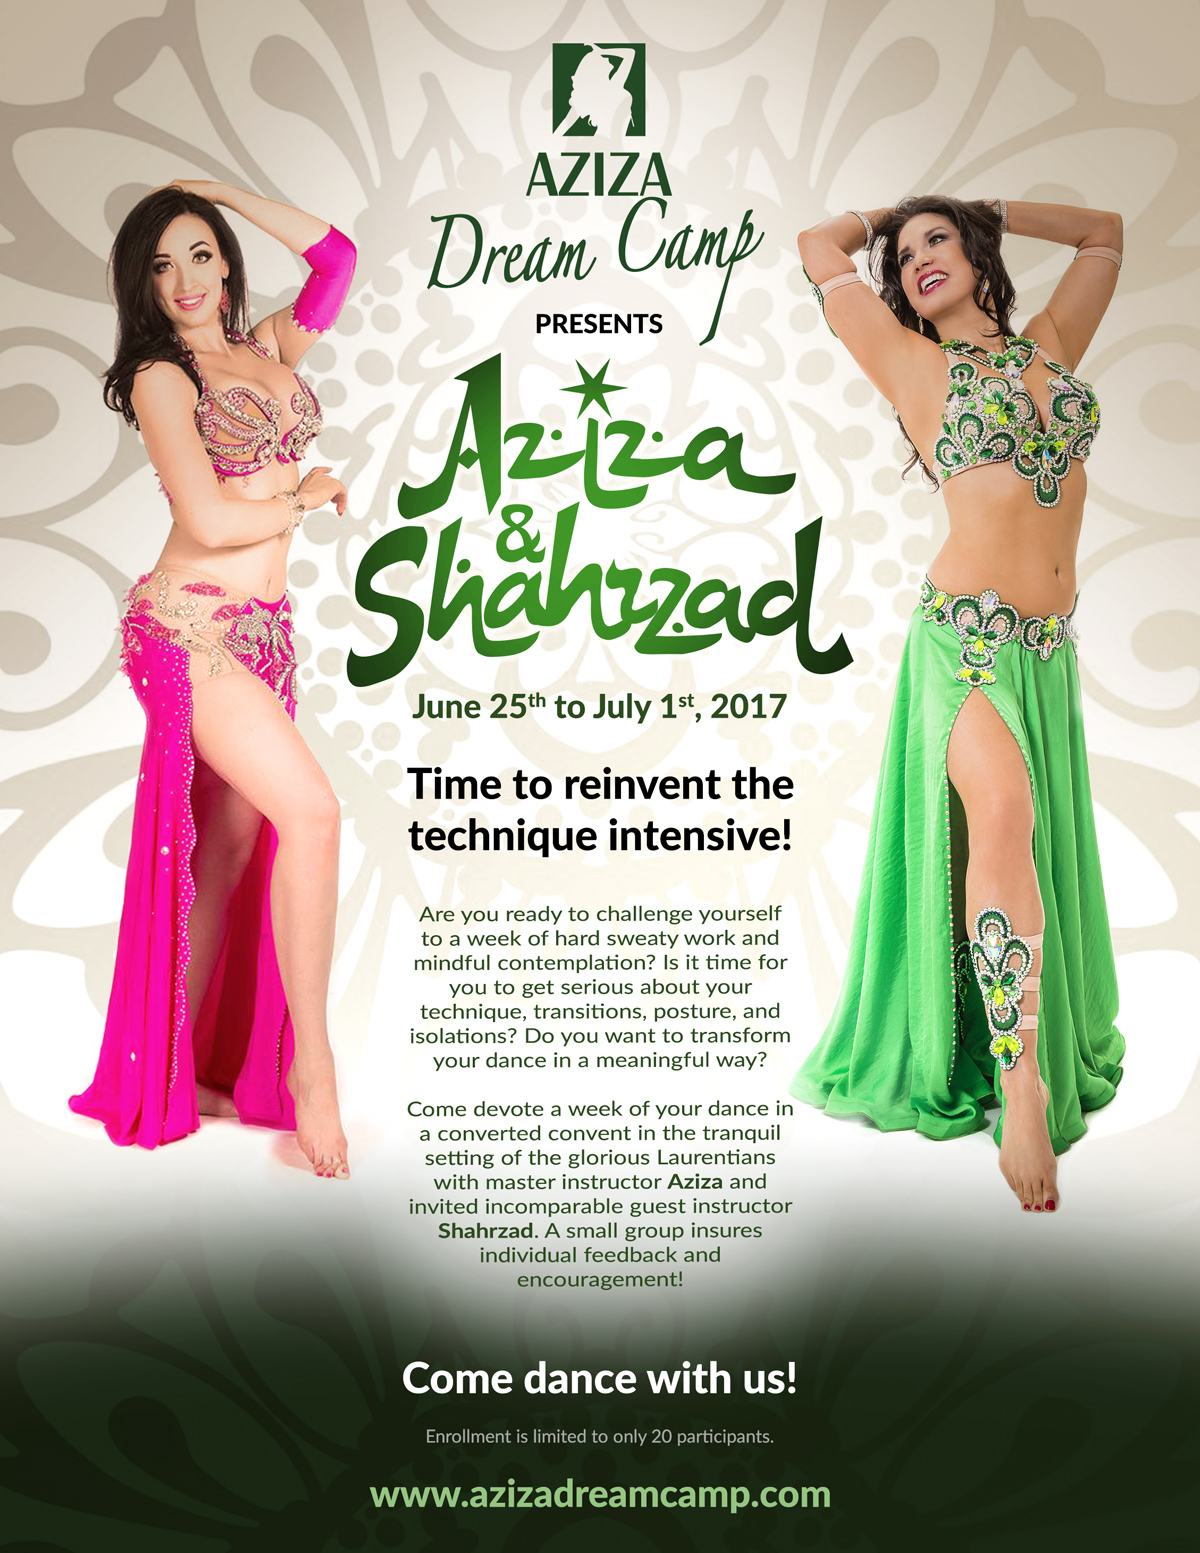 belly dance retreat aziza dreamcamp june 2017 shahrzad